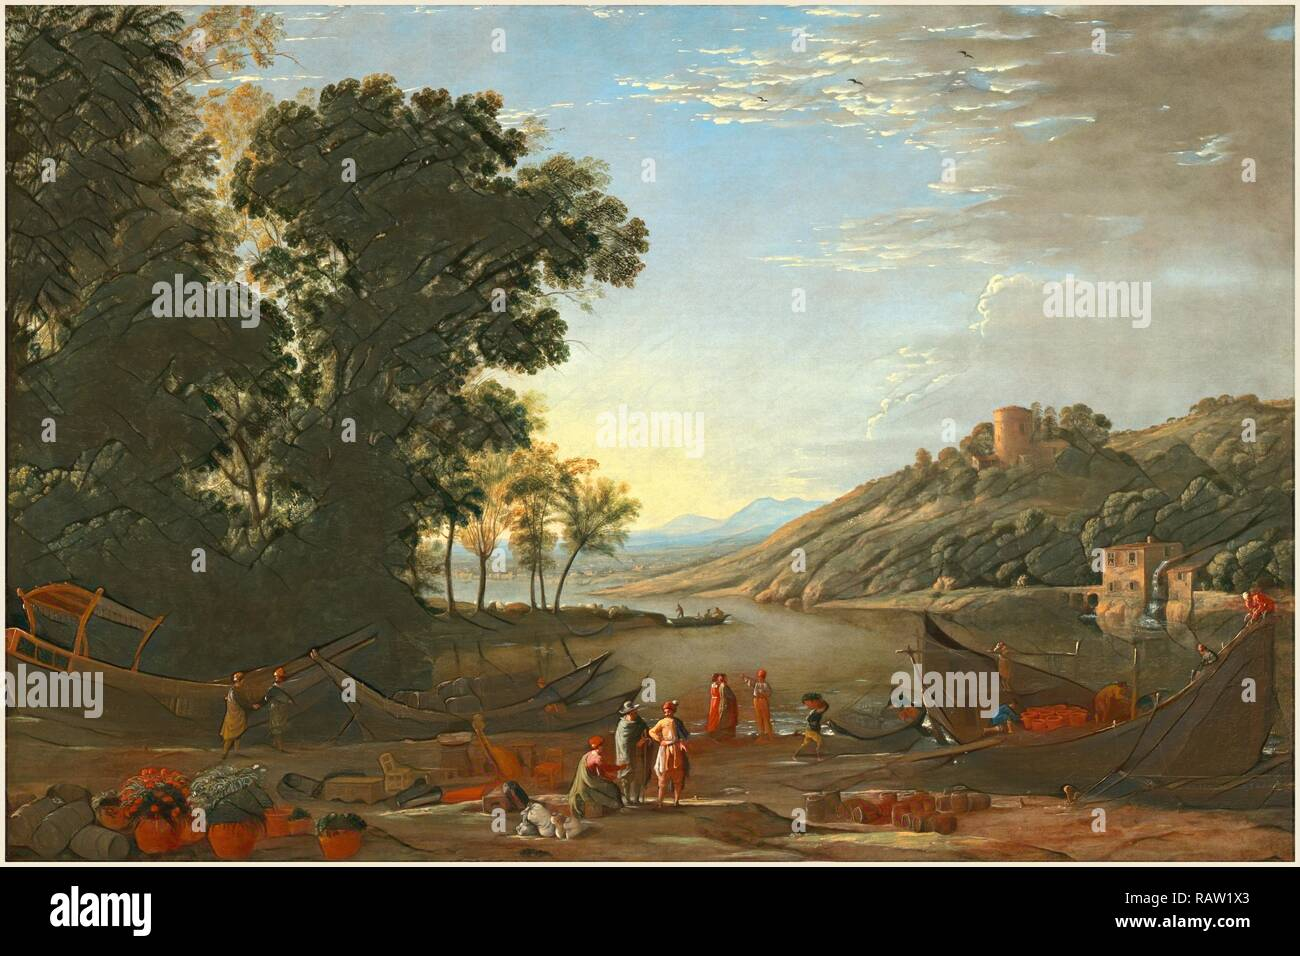 Claude Lorrain, French (1604-1605-1682), Landscape with Merchants, c. 1629, oil on canvas. Reimagined - Stock Image